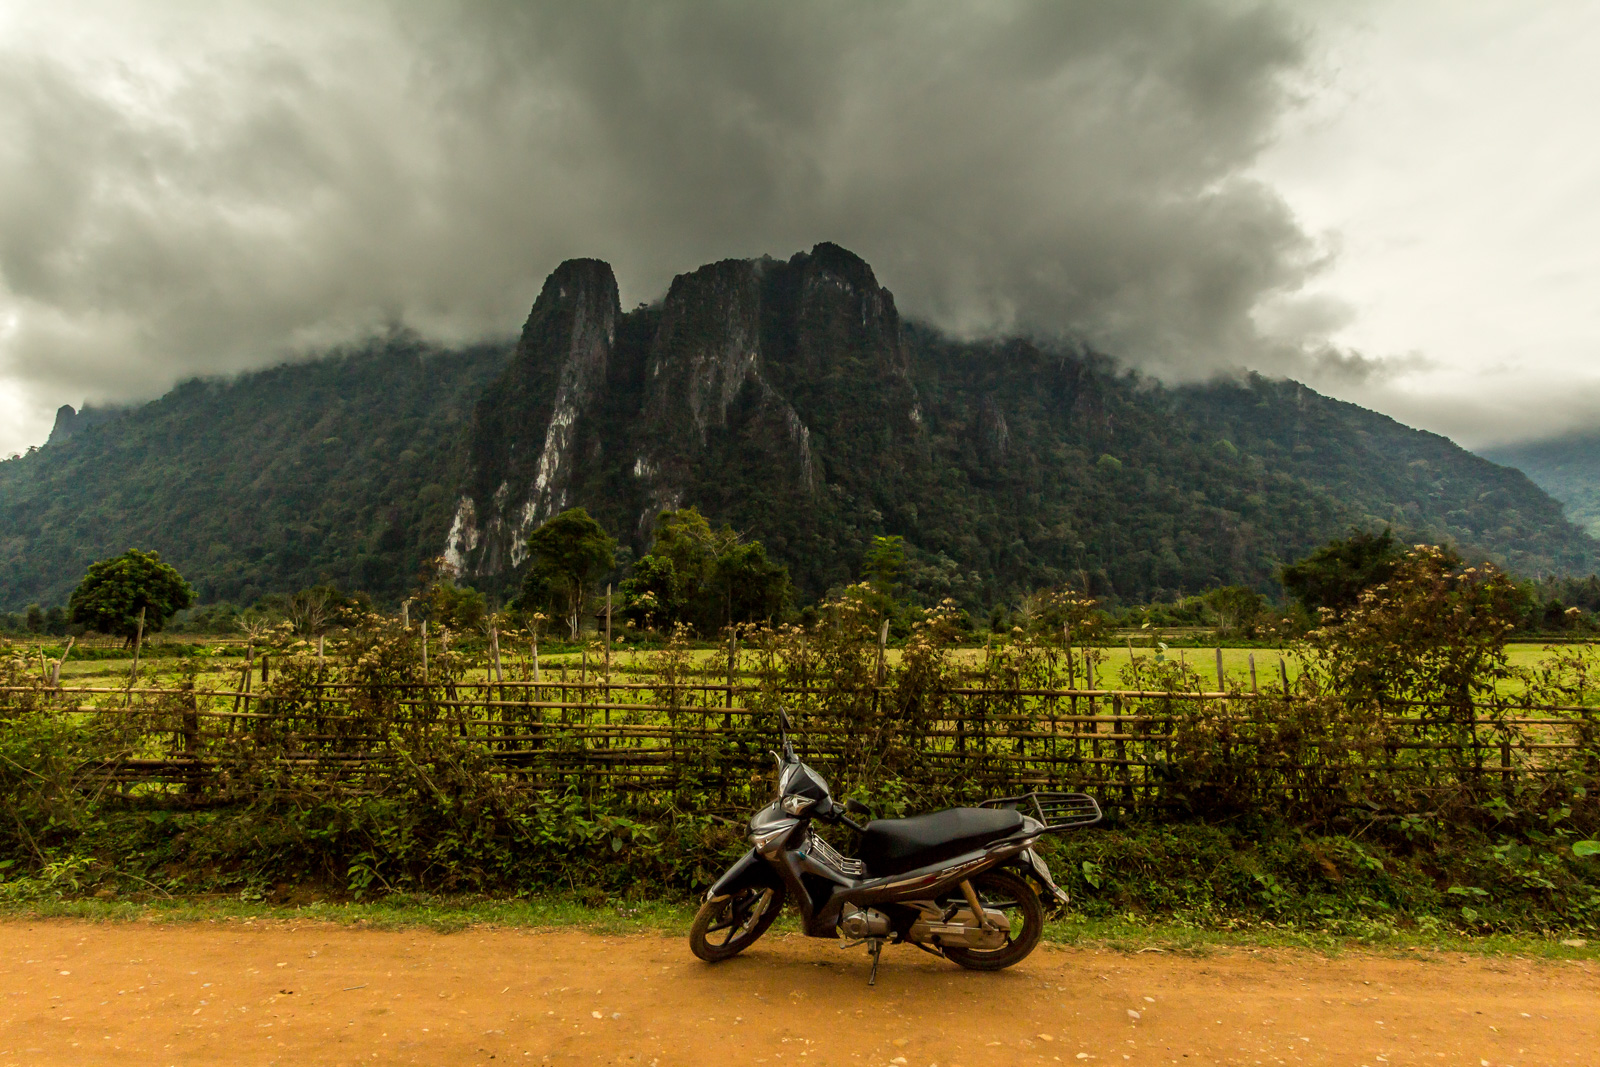 The Vang Vieng countryside is fantastic.